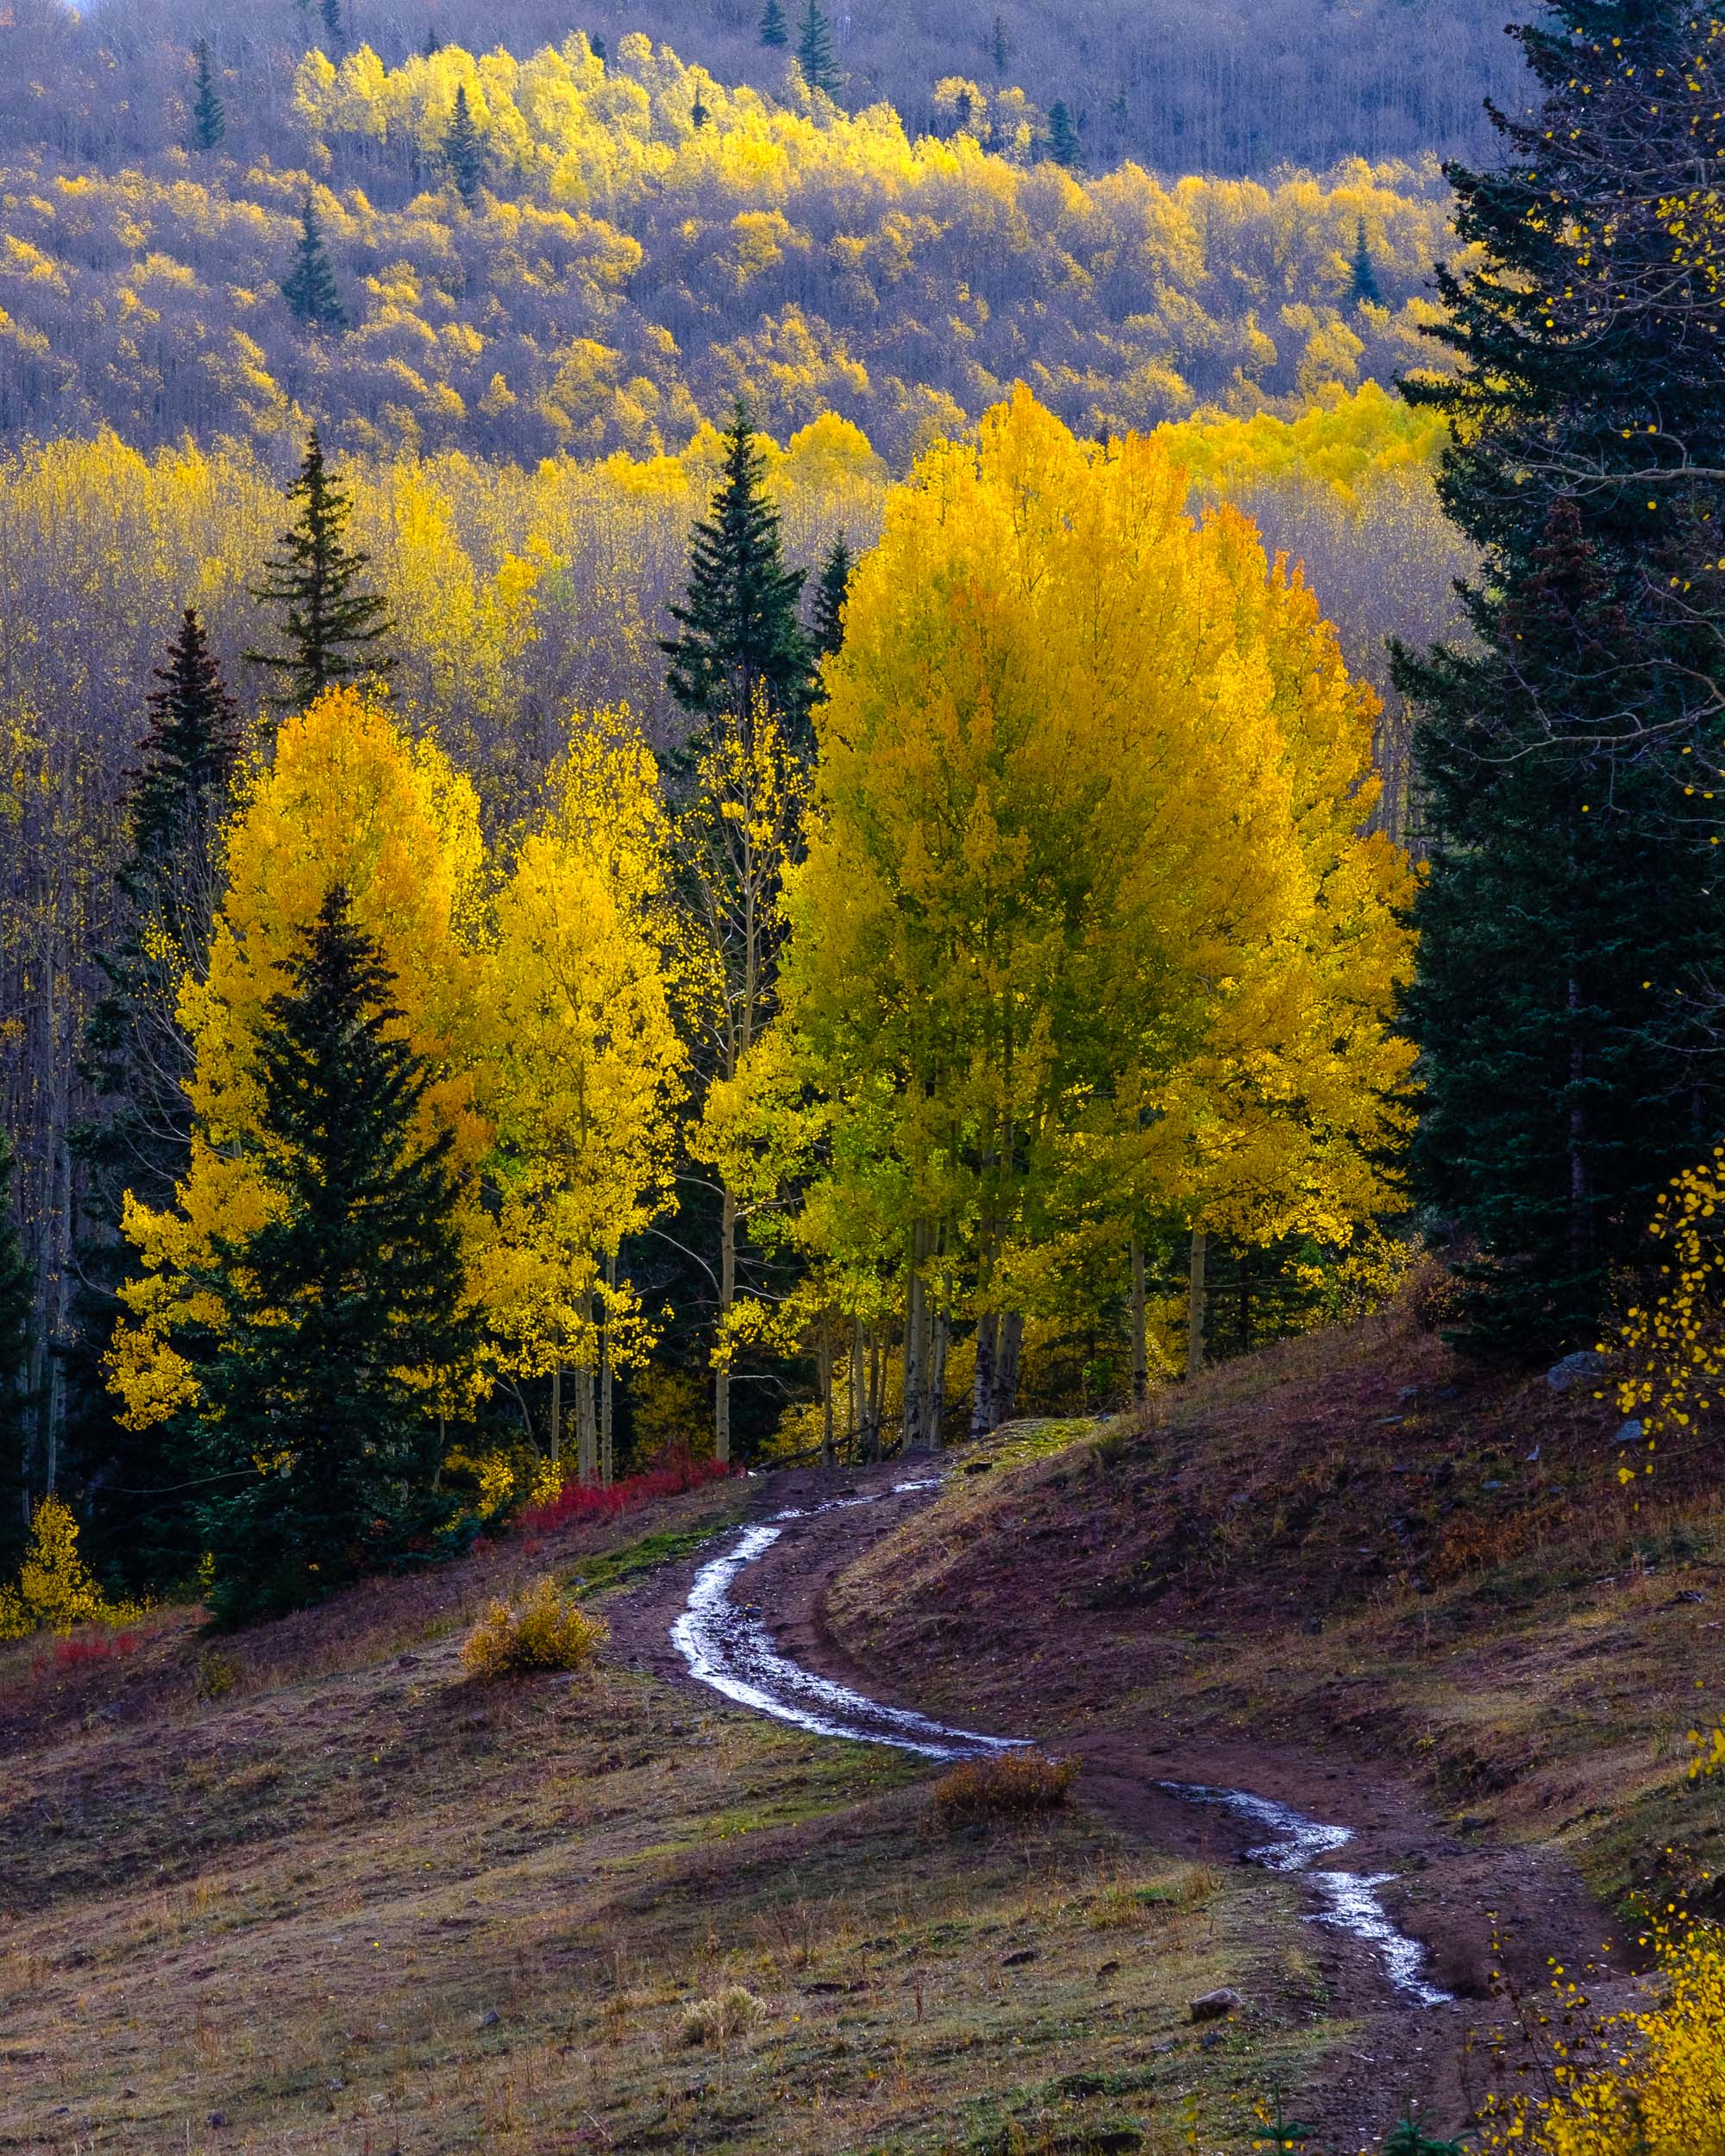 Sunshine highlights the aspens trees along a back country road in the Uncompahgre National Forest - Fuji XT2, XF 50-140mm f/2.8 @ 115mm